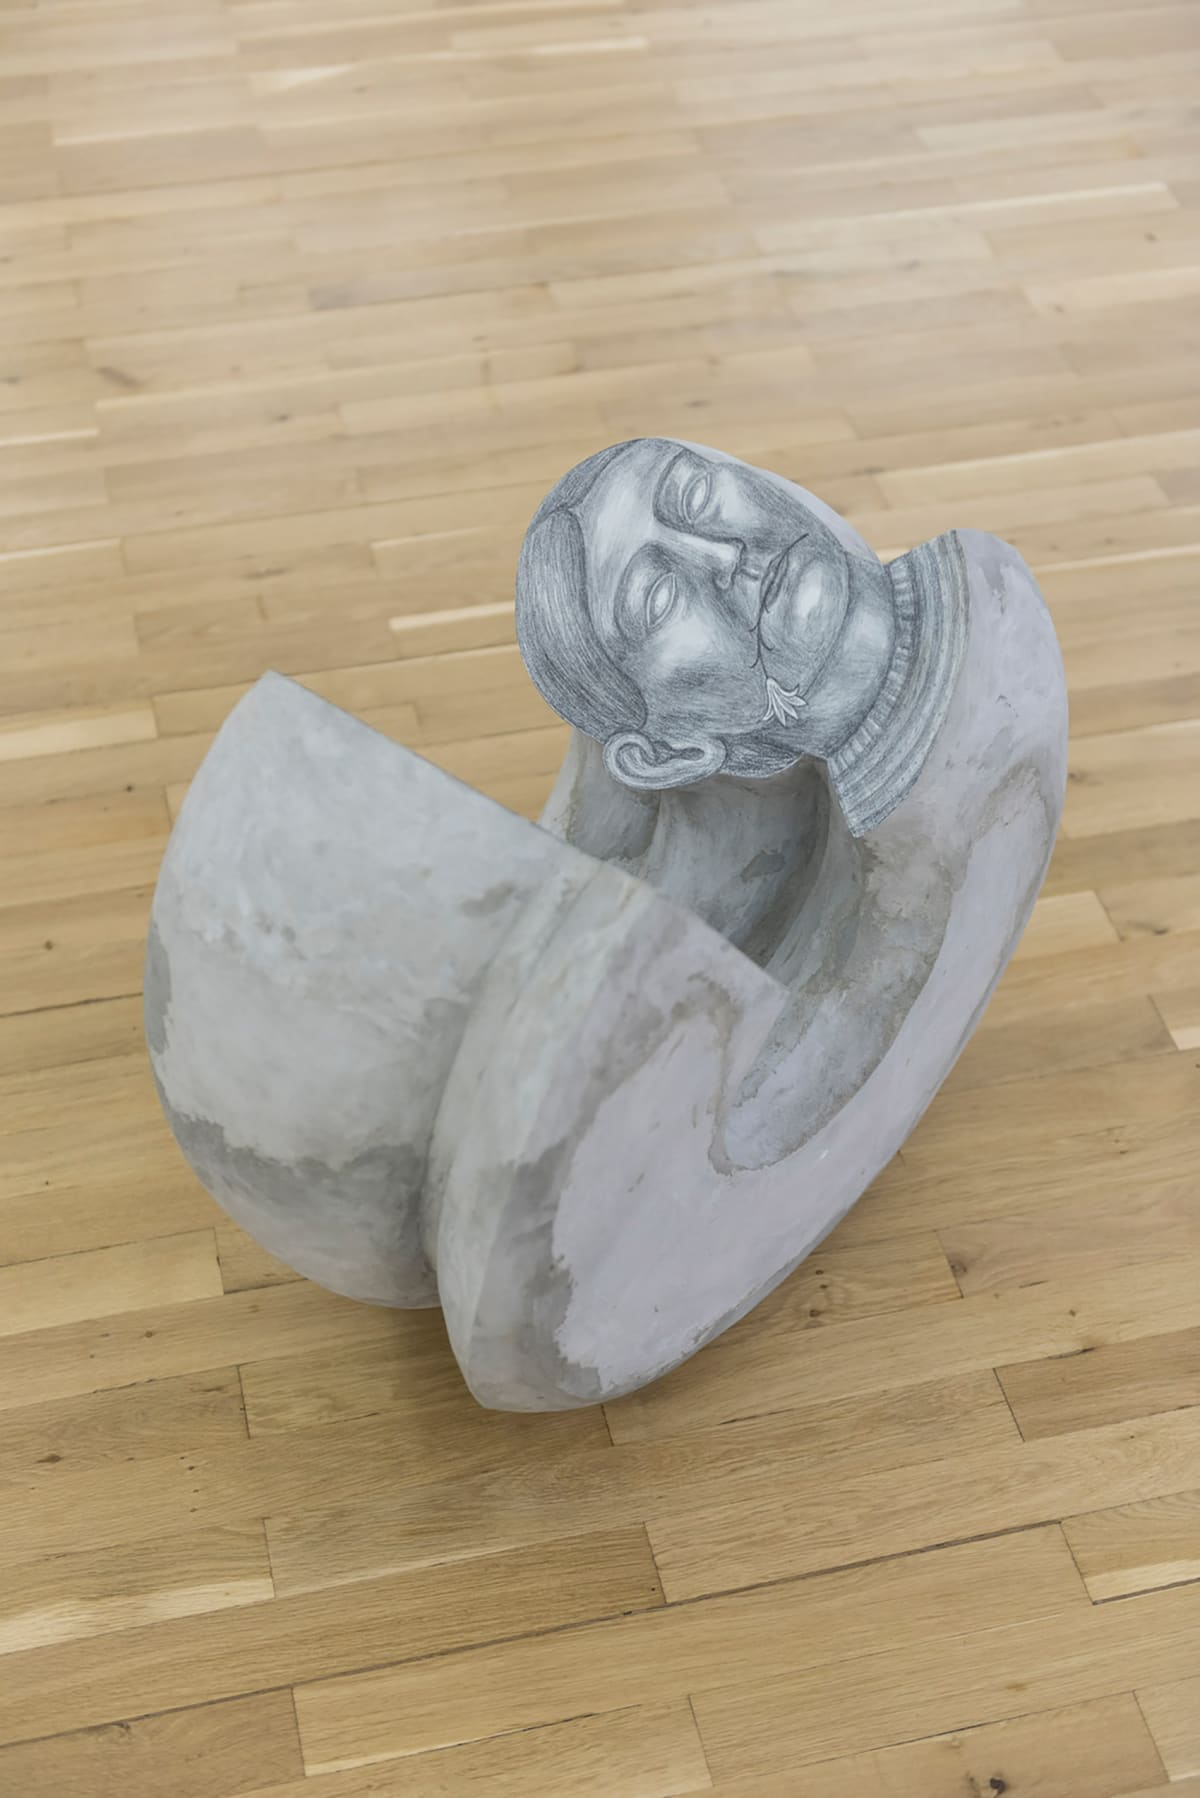 Image shows sculpture of a woman like snail